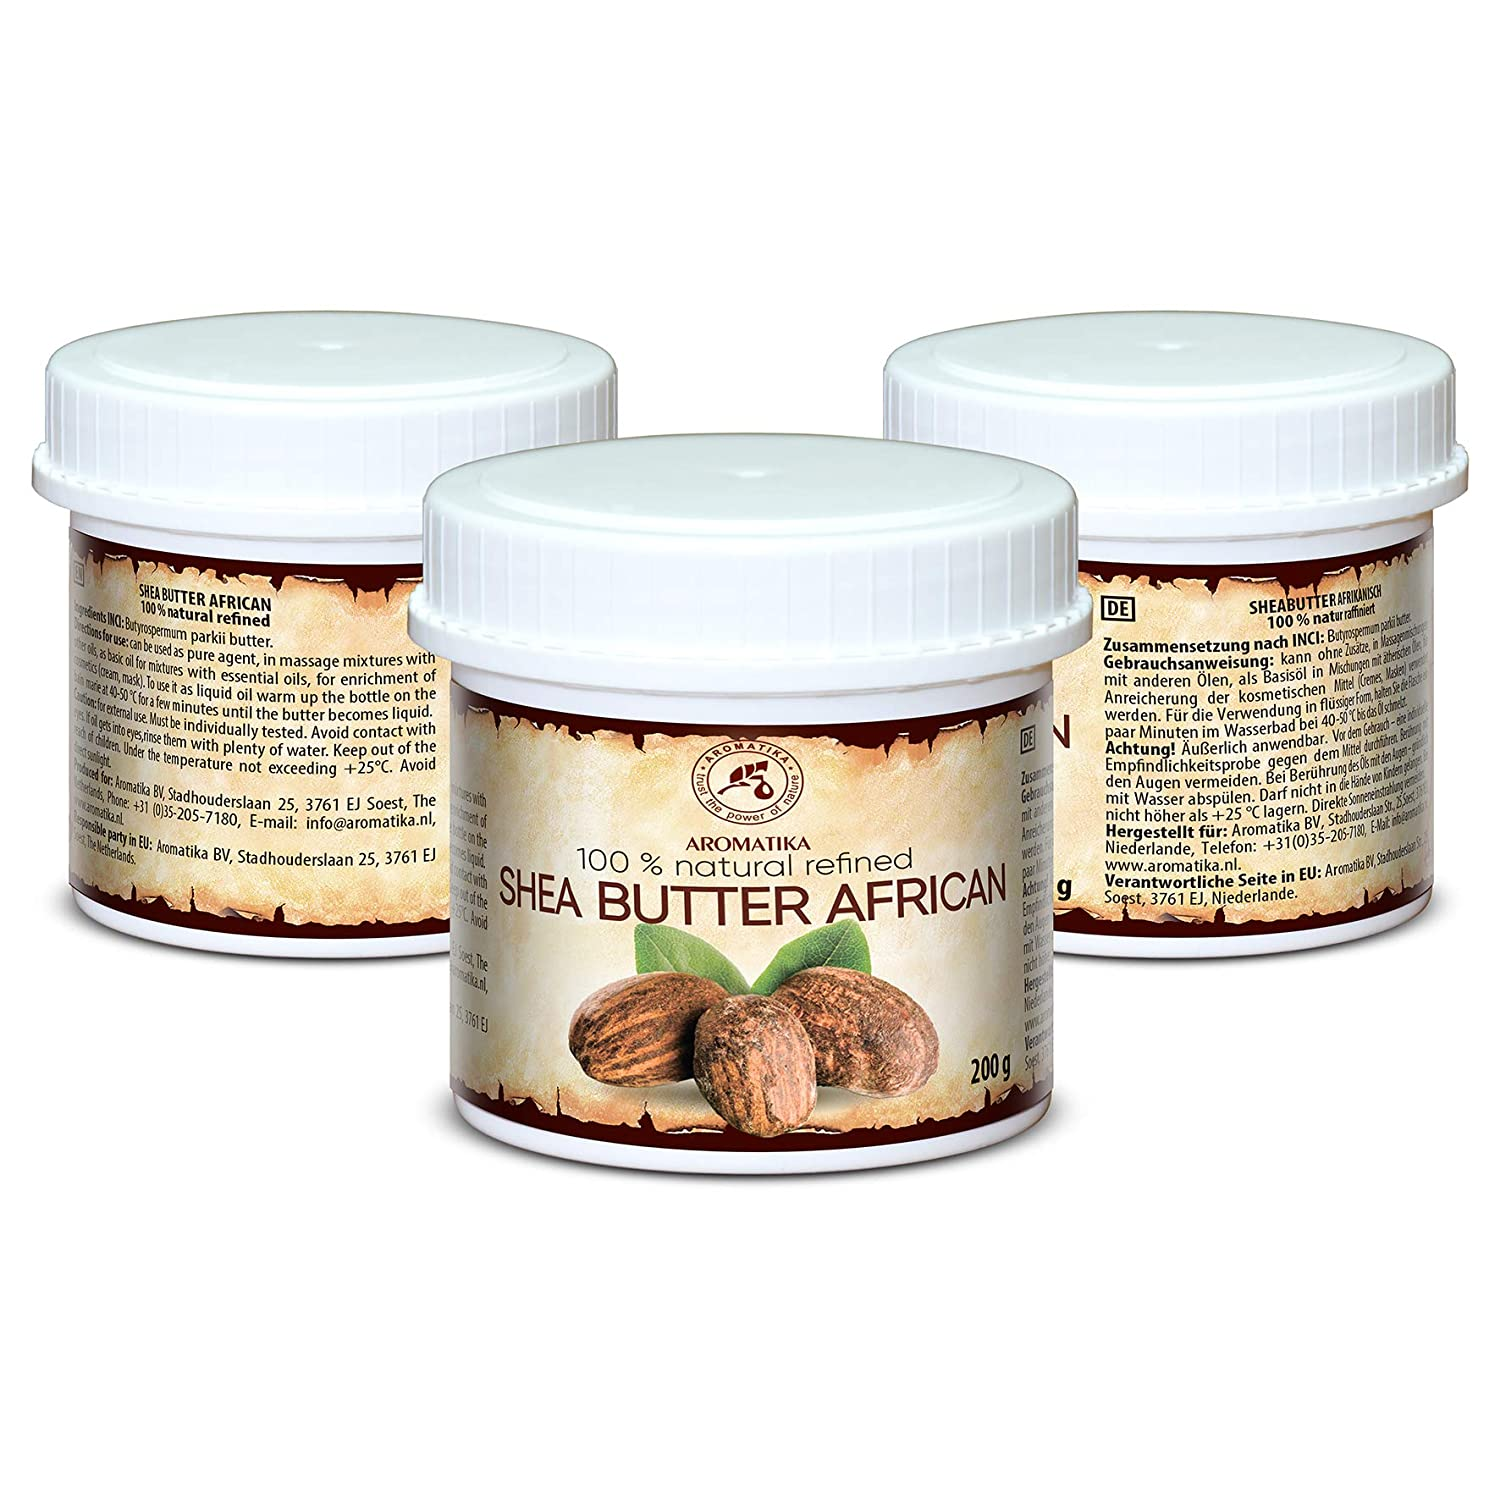 Amazon.com: Shea Butter African 200g - Refined - Butyrospermum Parkii Butter - African - 100% Pure & Natural - Sheabutter - Best for Hair - Skin - Lip ...